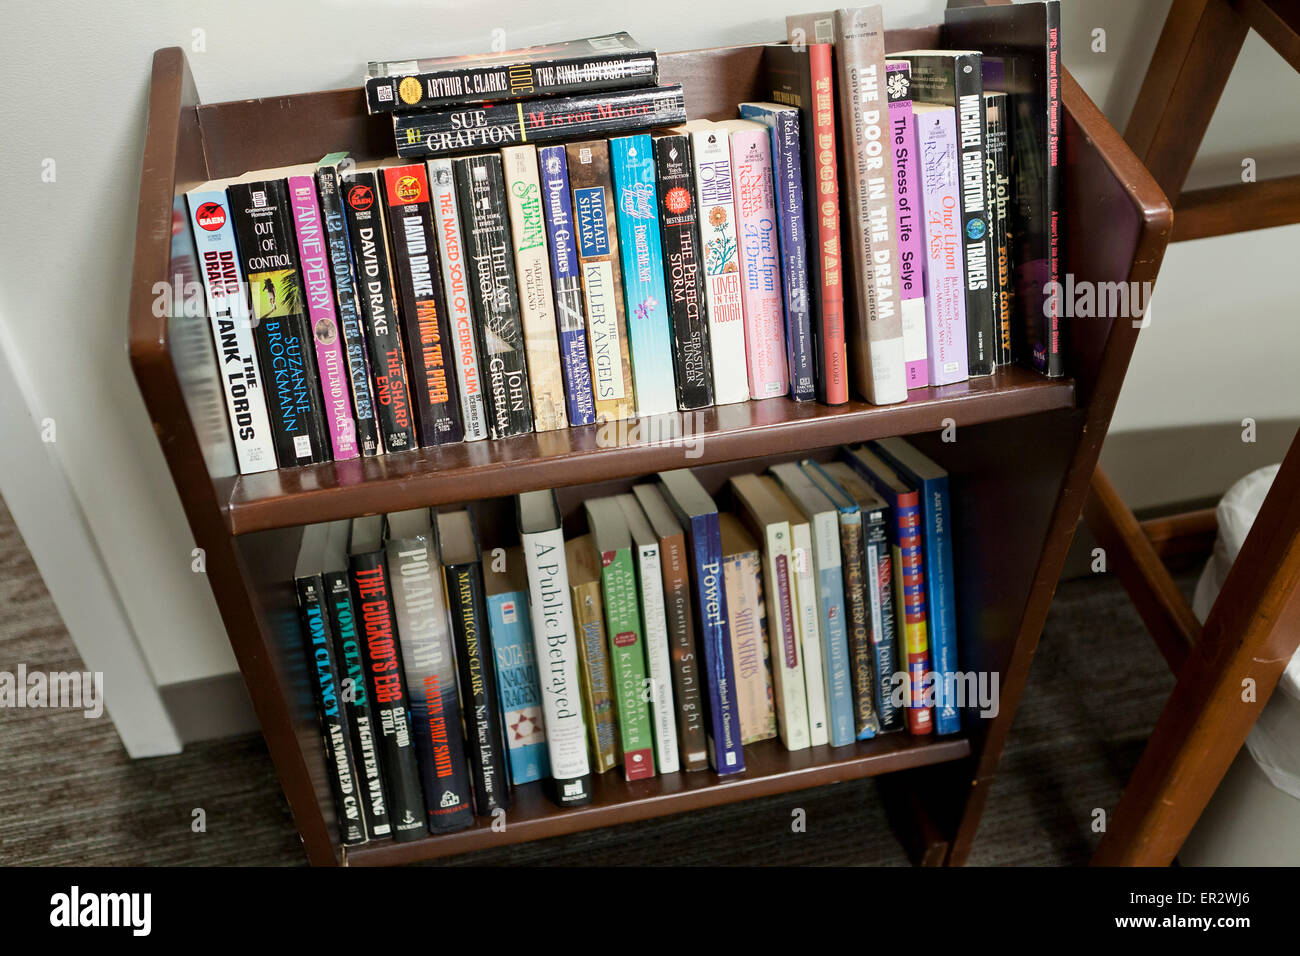 Small bookshelf in office - USA - Stock Image